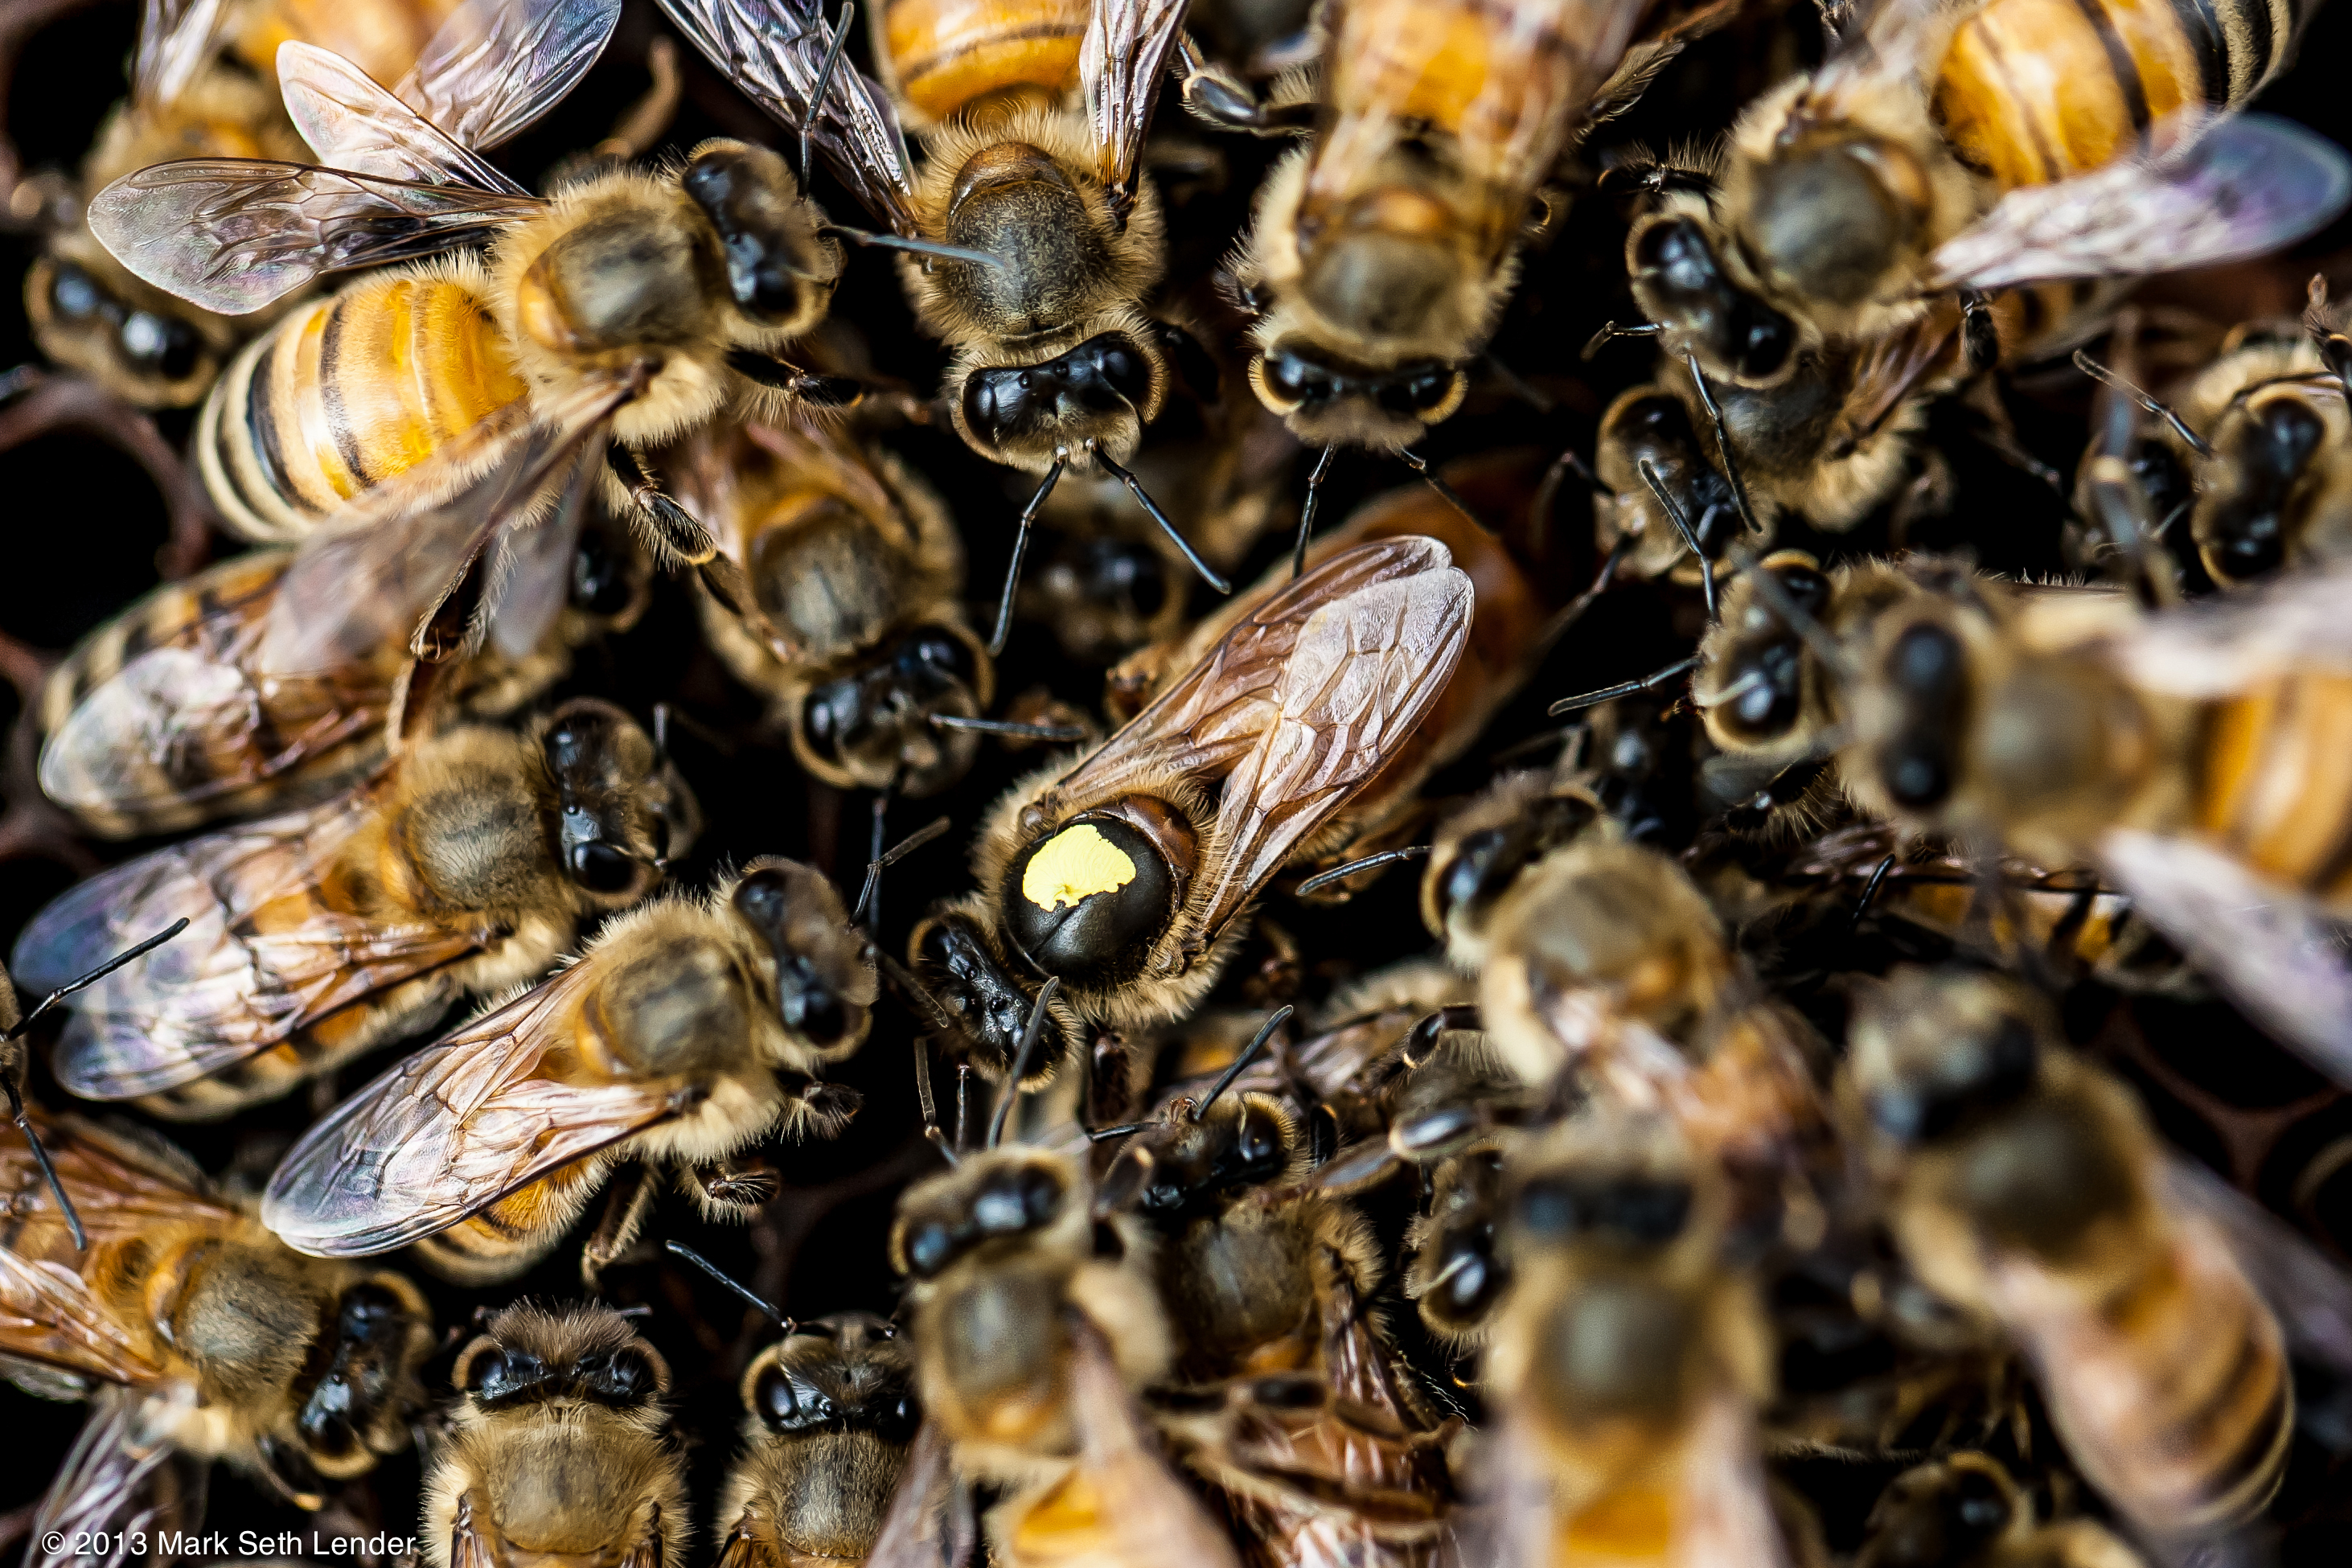 The Role of the Queen Bee